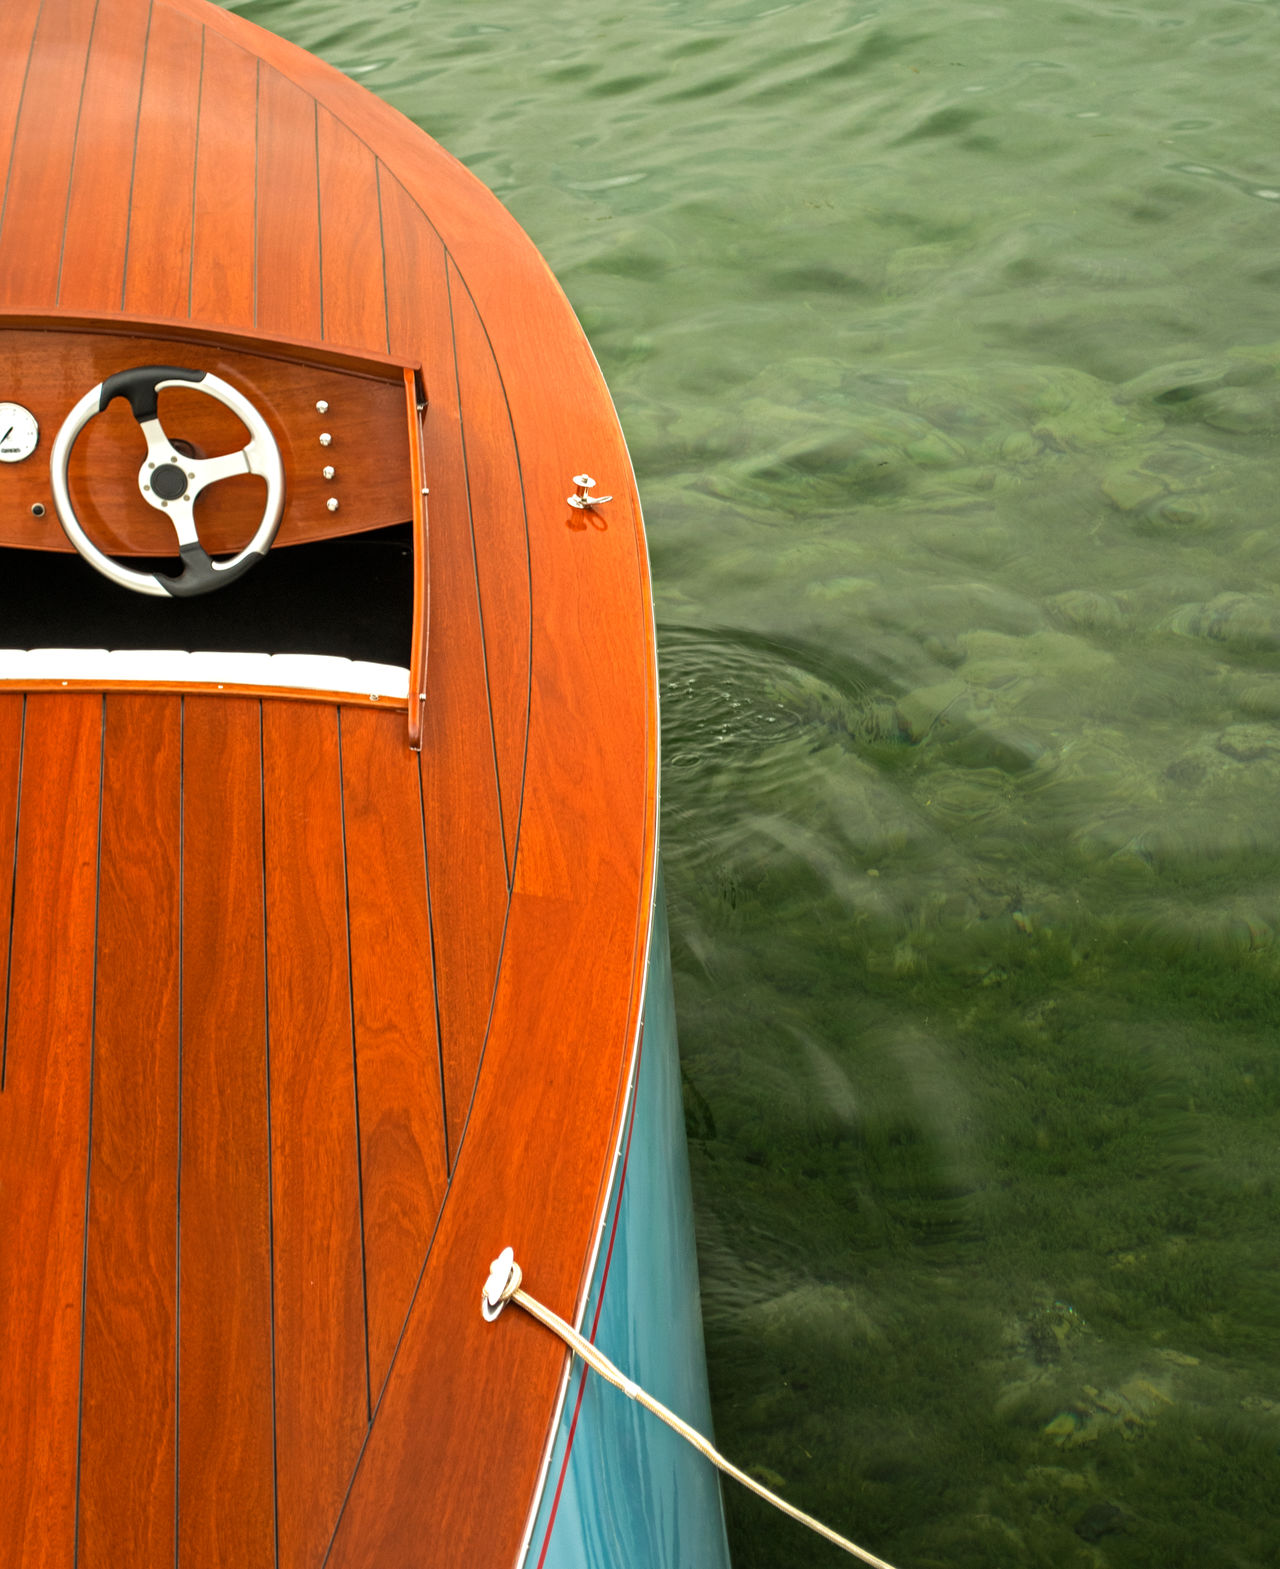 Vintage boat on a lake. Boat Boating Clear Water Cropped Day Detail Lake Lake Life Mode Of Transport Nature Nautical Nautical Vessel No People Old Boat Racing Retro Live For The Story Rope Steering Wheel Summer Transportation Vintage W Water Wooden